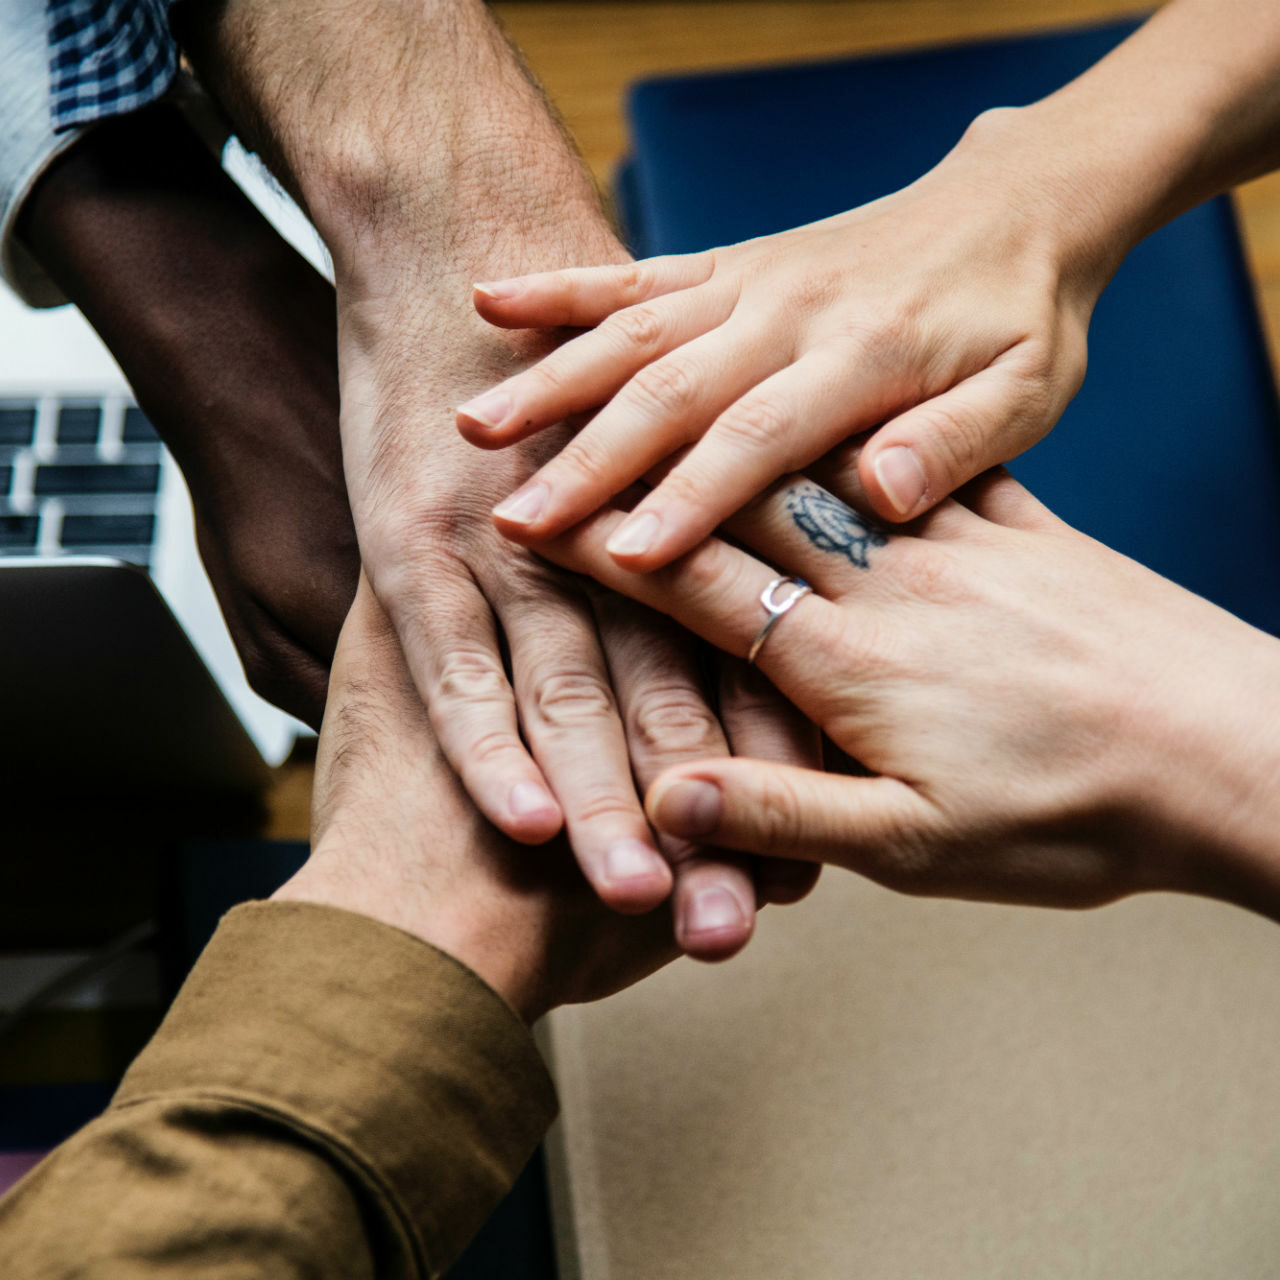 Mental health at work: How to support staff